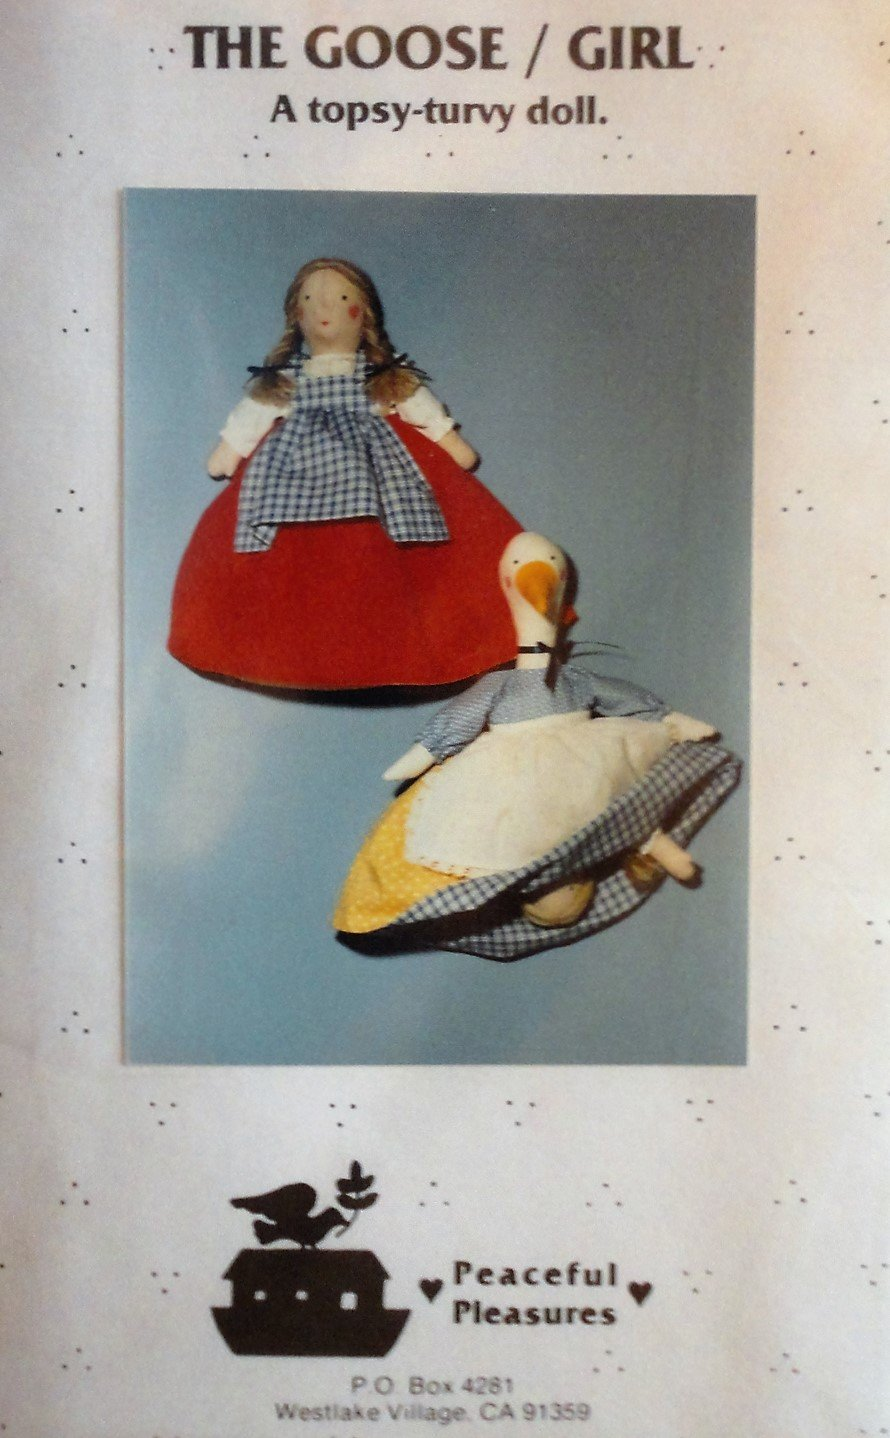 Topsy Turvy Doll The Goose / Girl Sewing Pattern from Peaceful Pleasures K-423